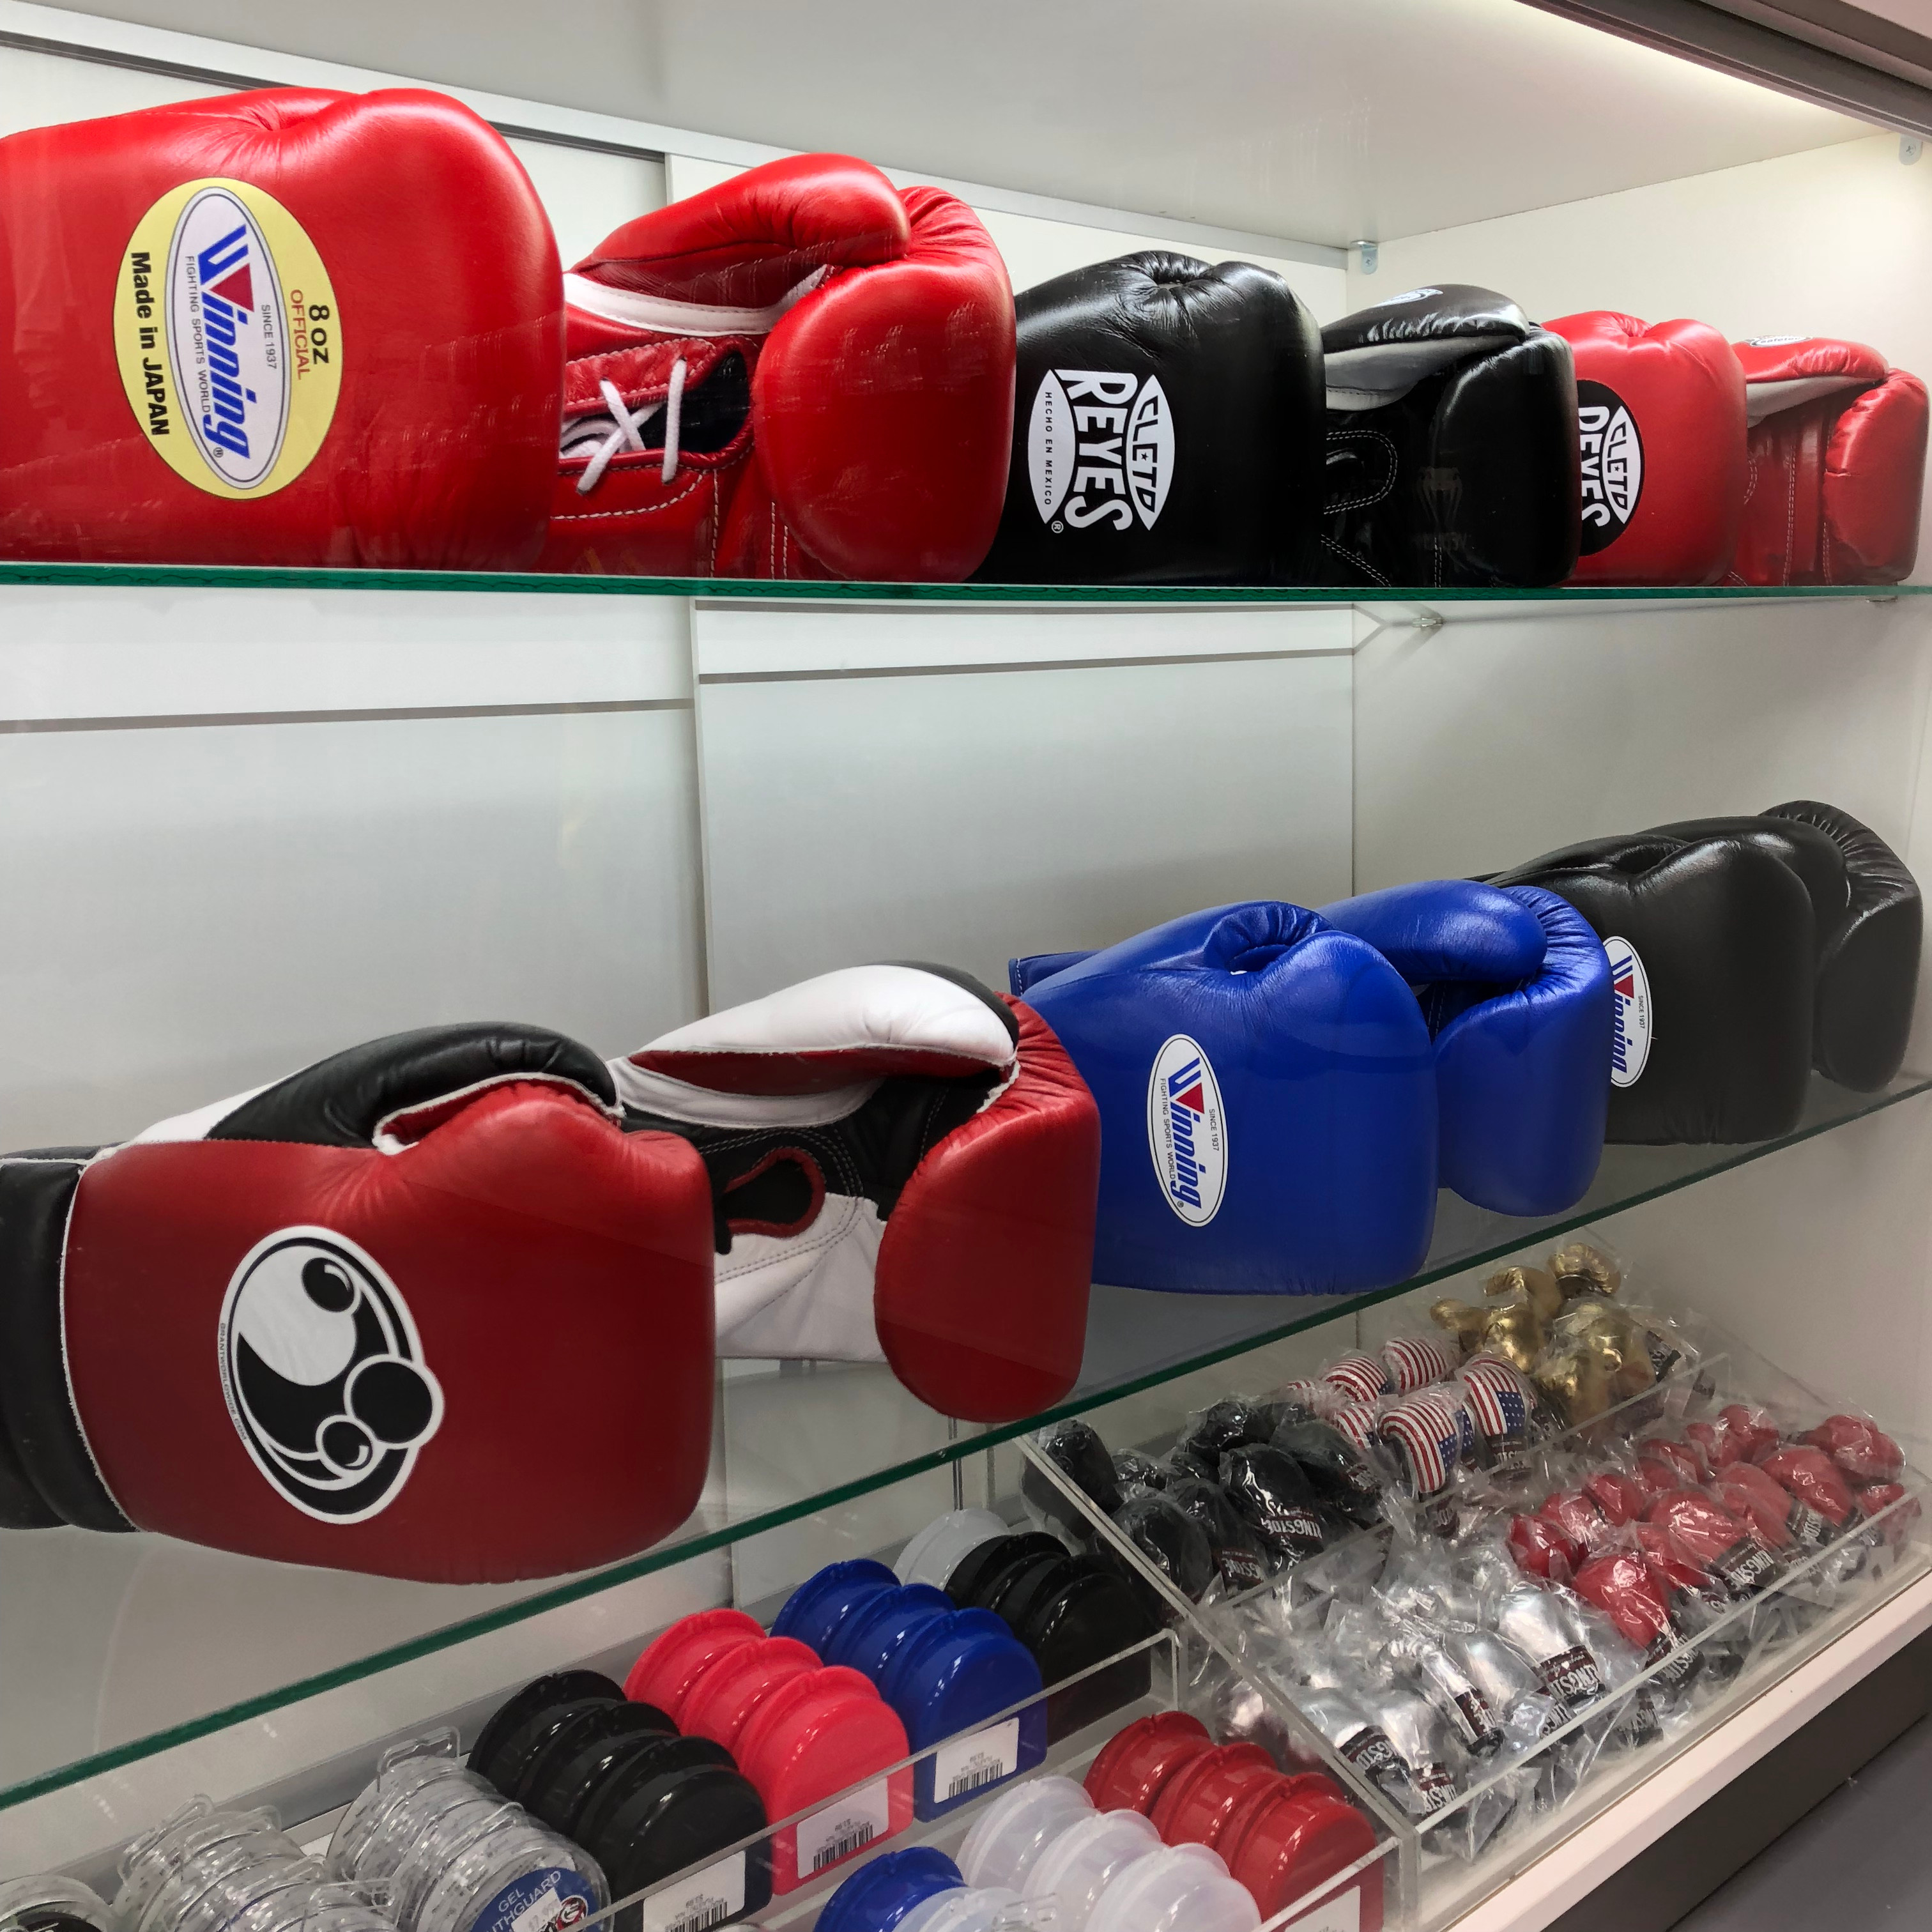 Grants Winning and Cleto Reyes Boxing Gloves